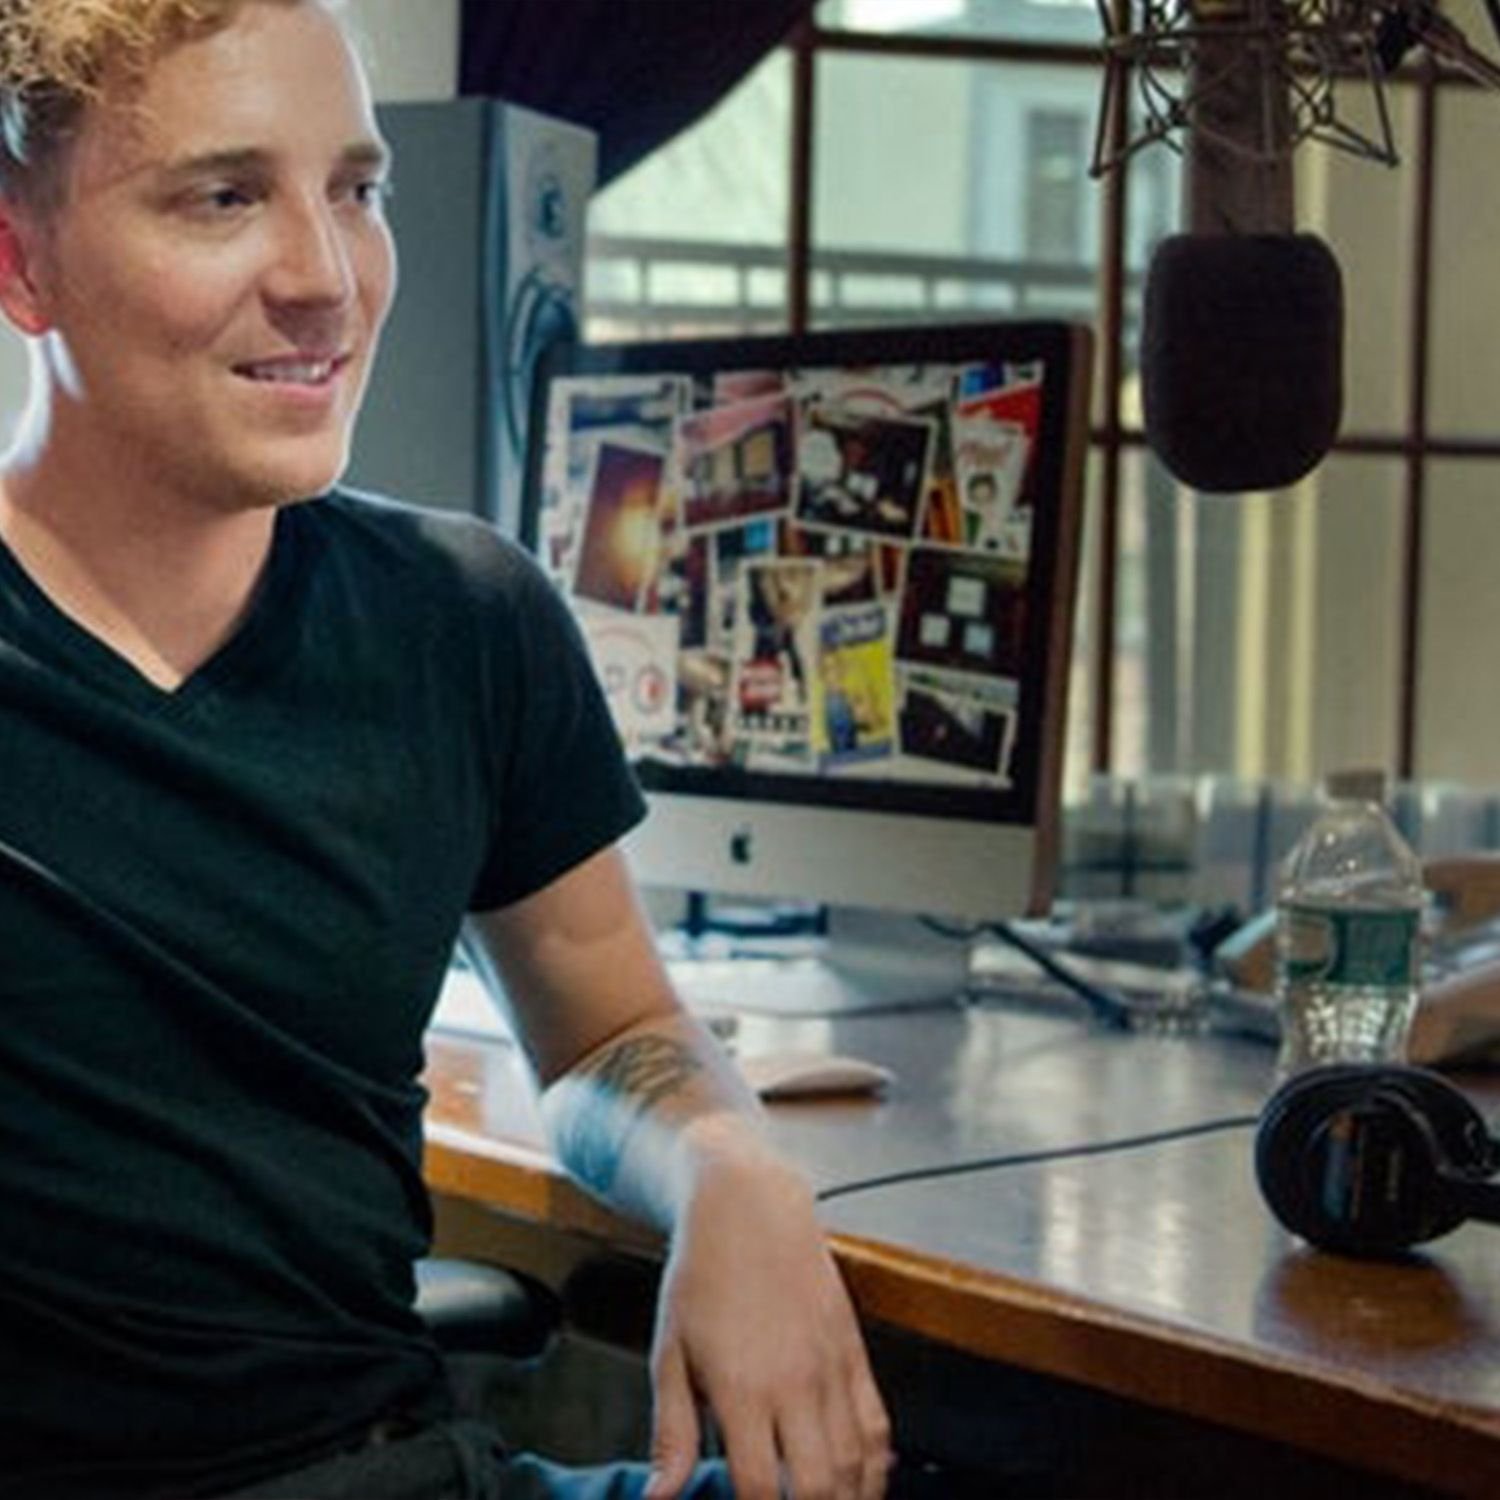 Best Podcasts for Entrepreneurs | Co-Founder of Contently.com Shane Snow on the Thrivetime Show Podcast